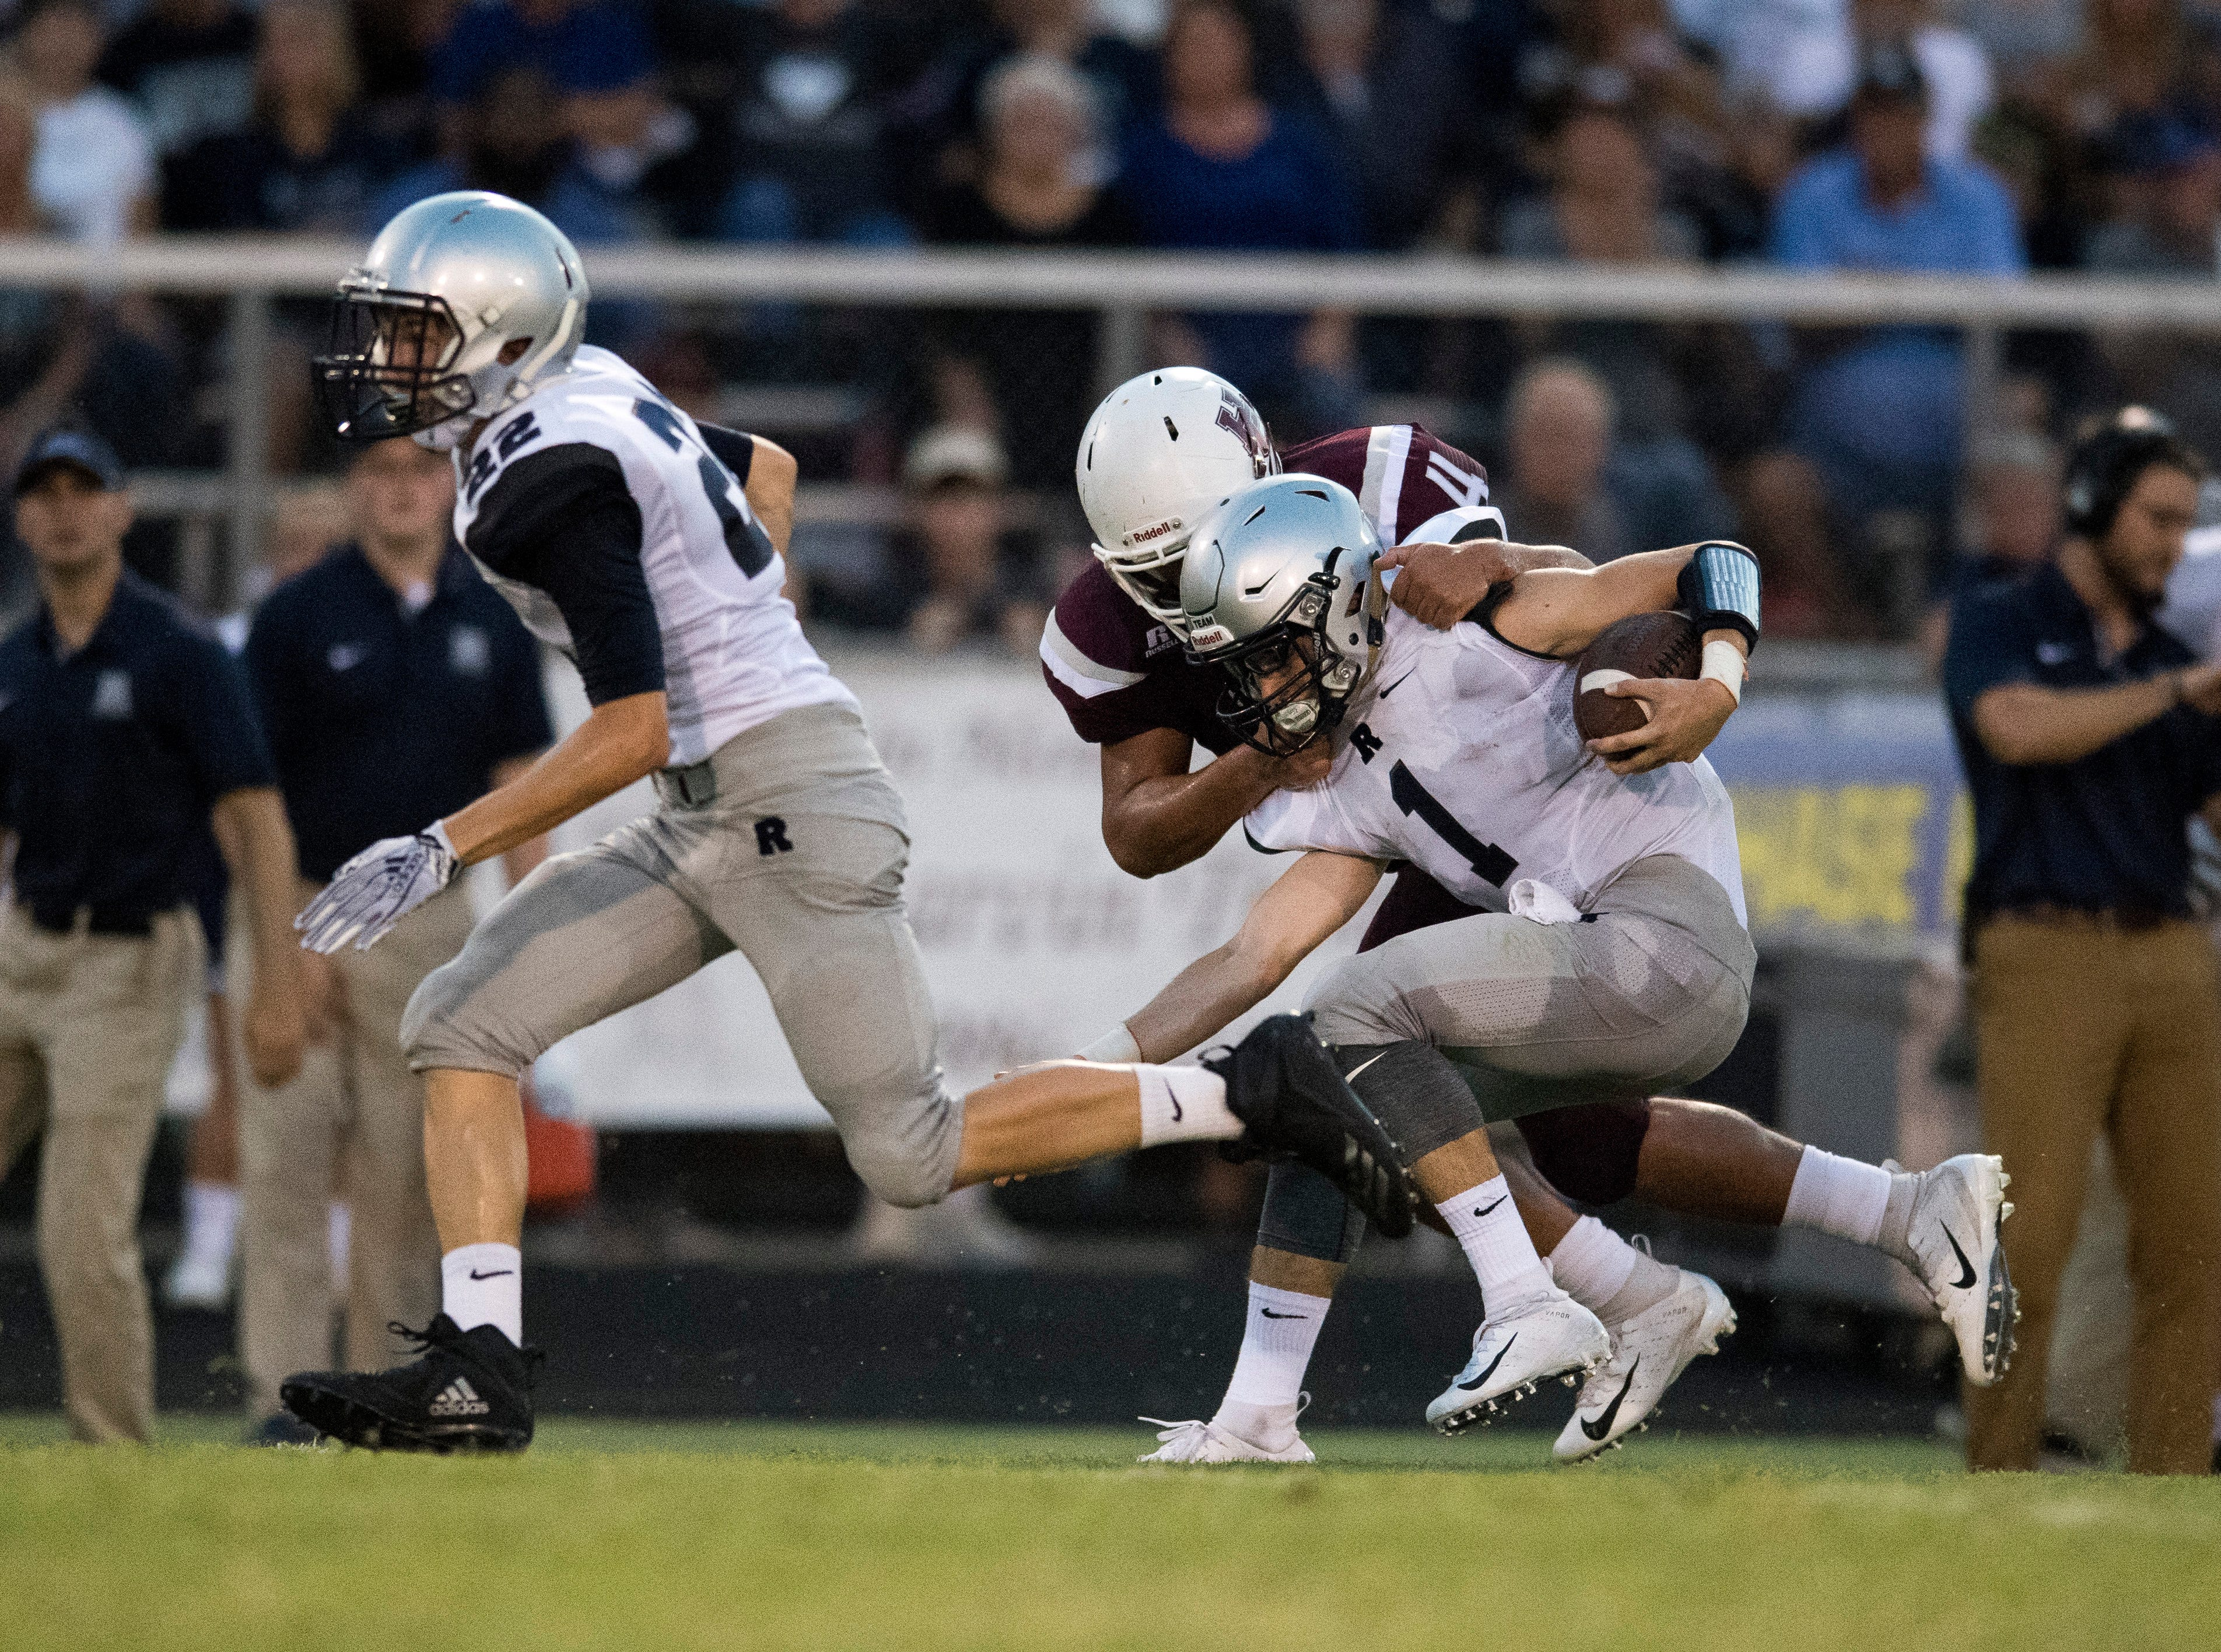 ReitzÕs Quarterback Eli Wiethop (1)  is tackled by HendersonÕs Layton Fletcher (4)  during the Reitz vs Henderson County game at Colonel Stadium Friday, August 17, 2018. The Panthers defeated the Colonels 41-35 in the season opening game.